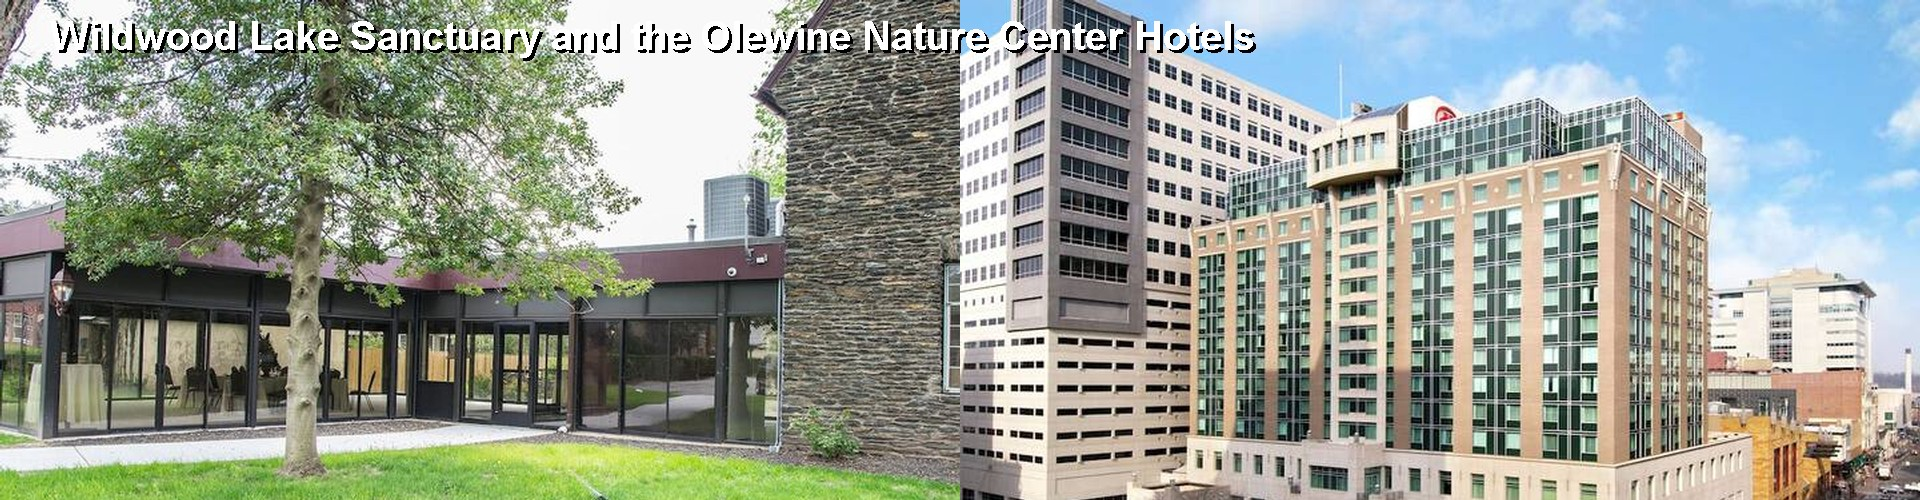 5 Best Hotels near Wildwood Lake Sanctuary and the Olewine Nature Center